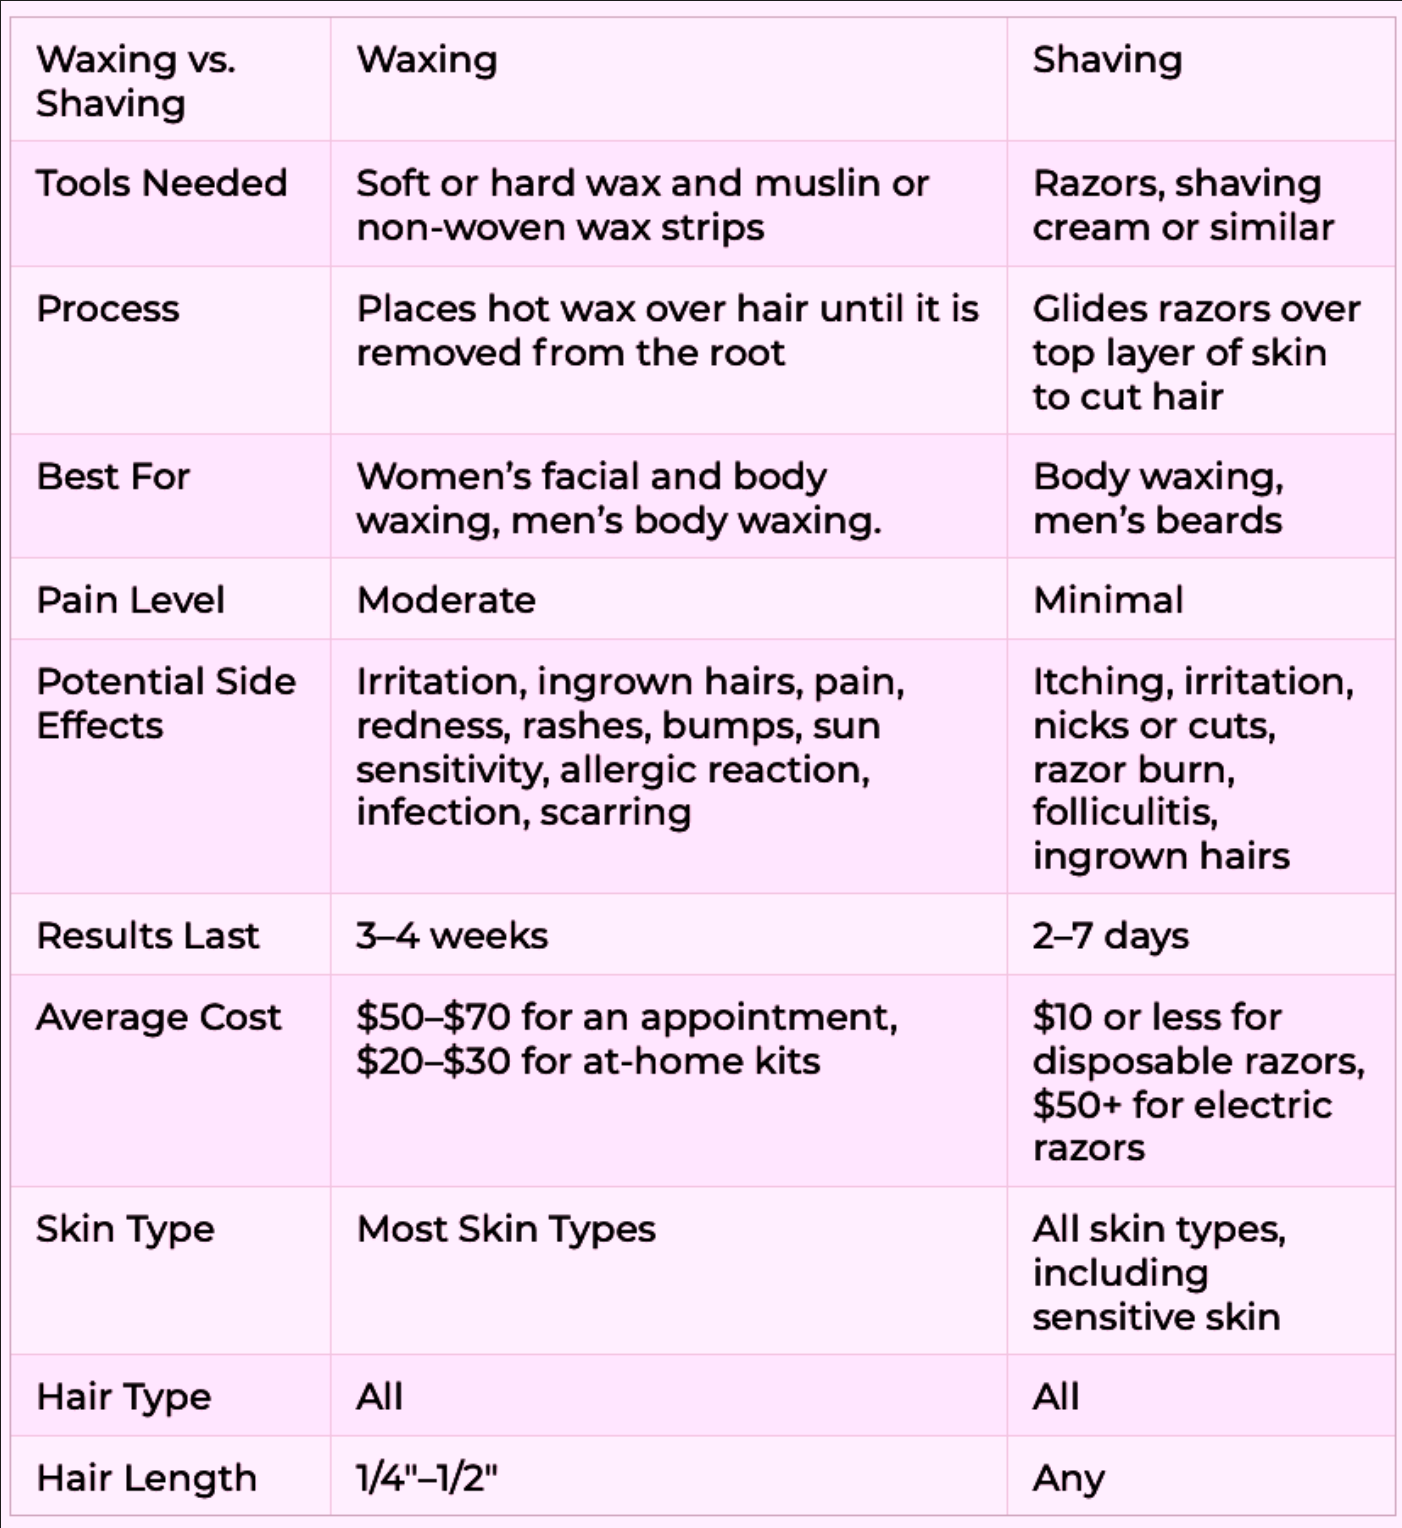 Comparing Waxing and Shaving